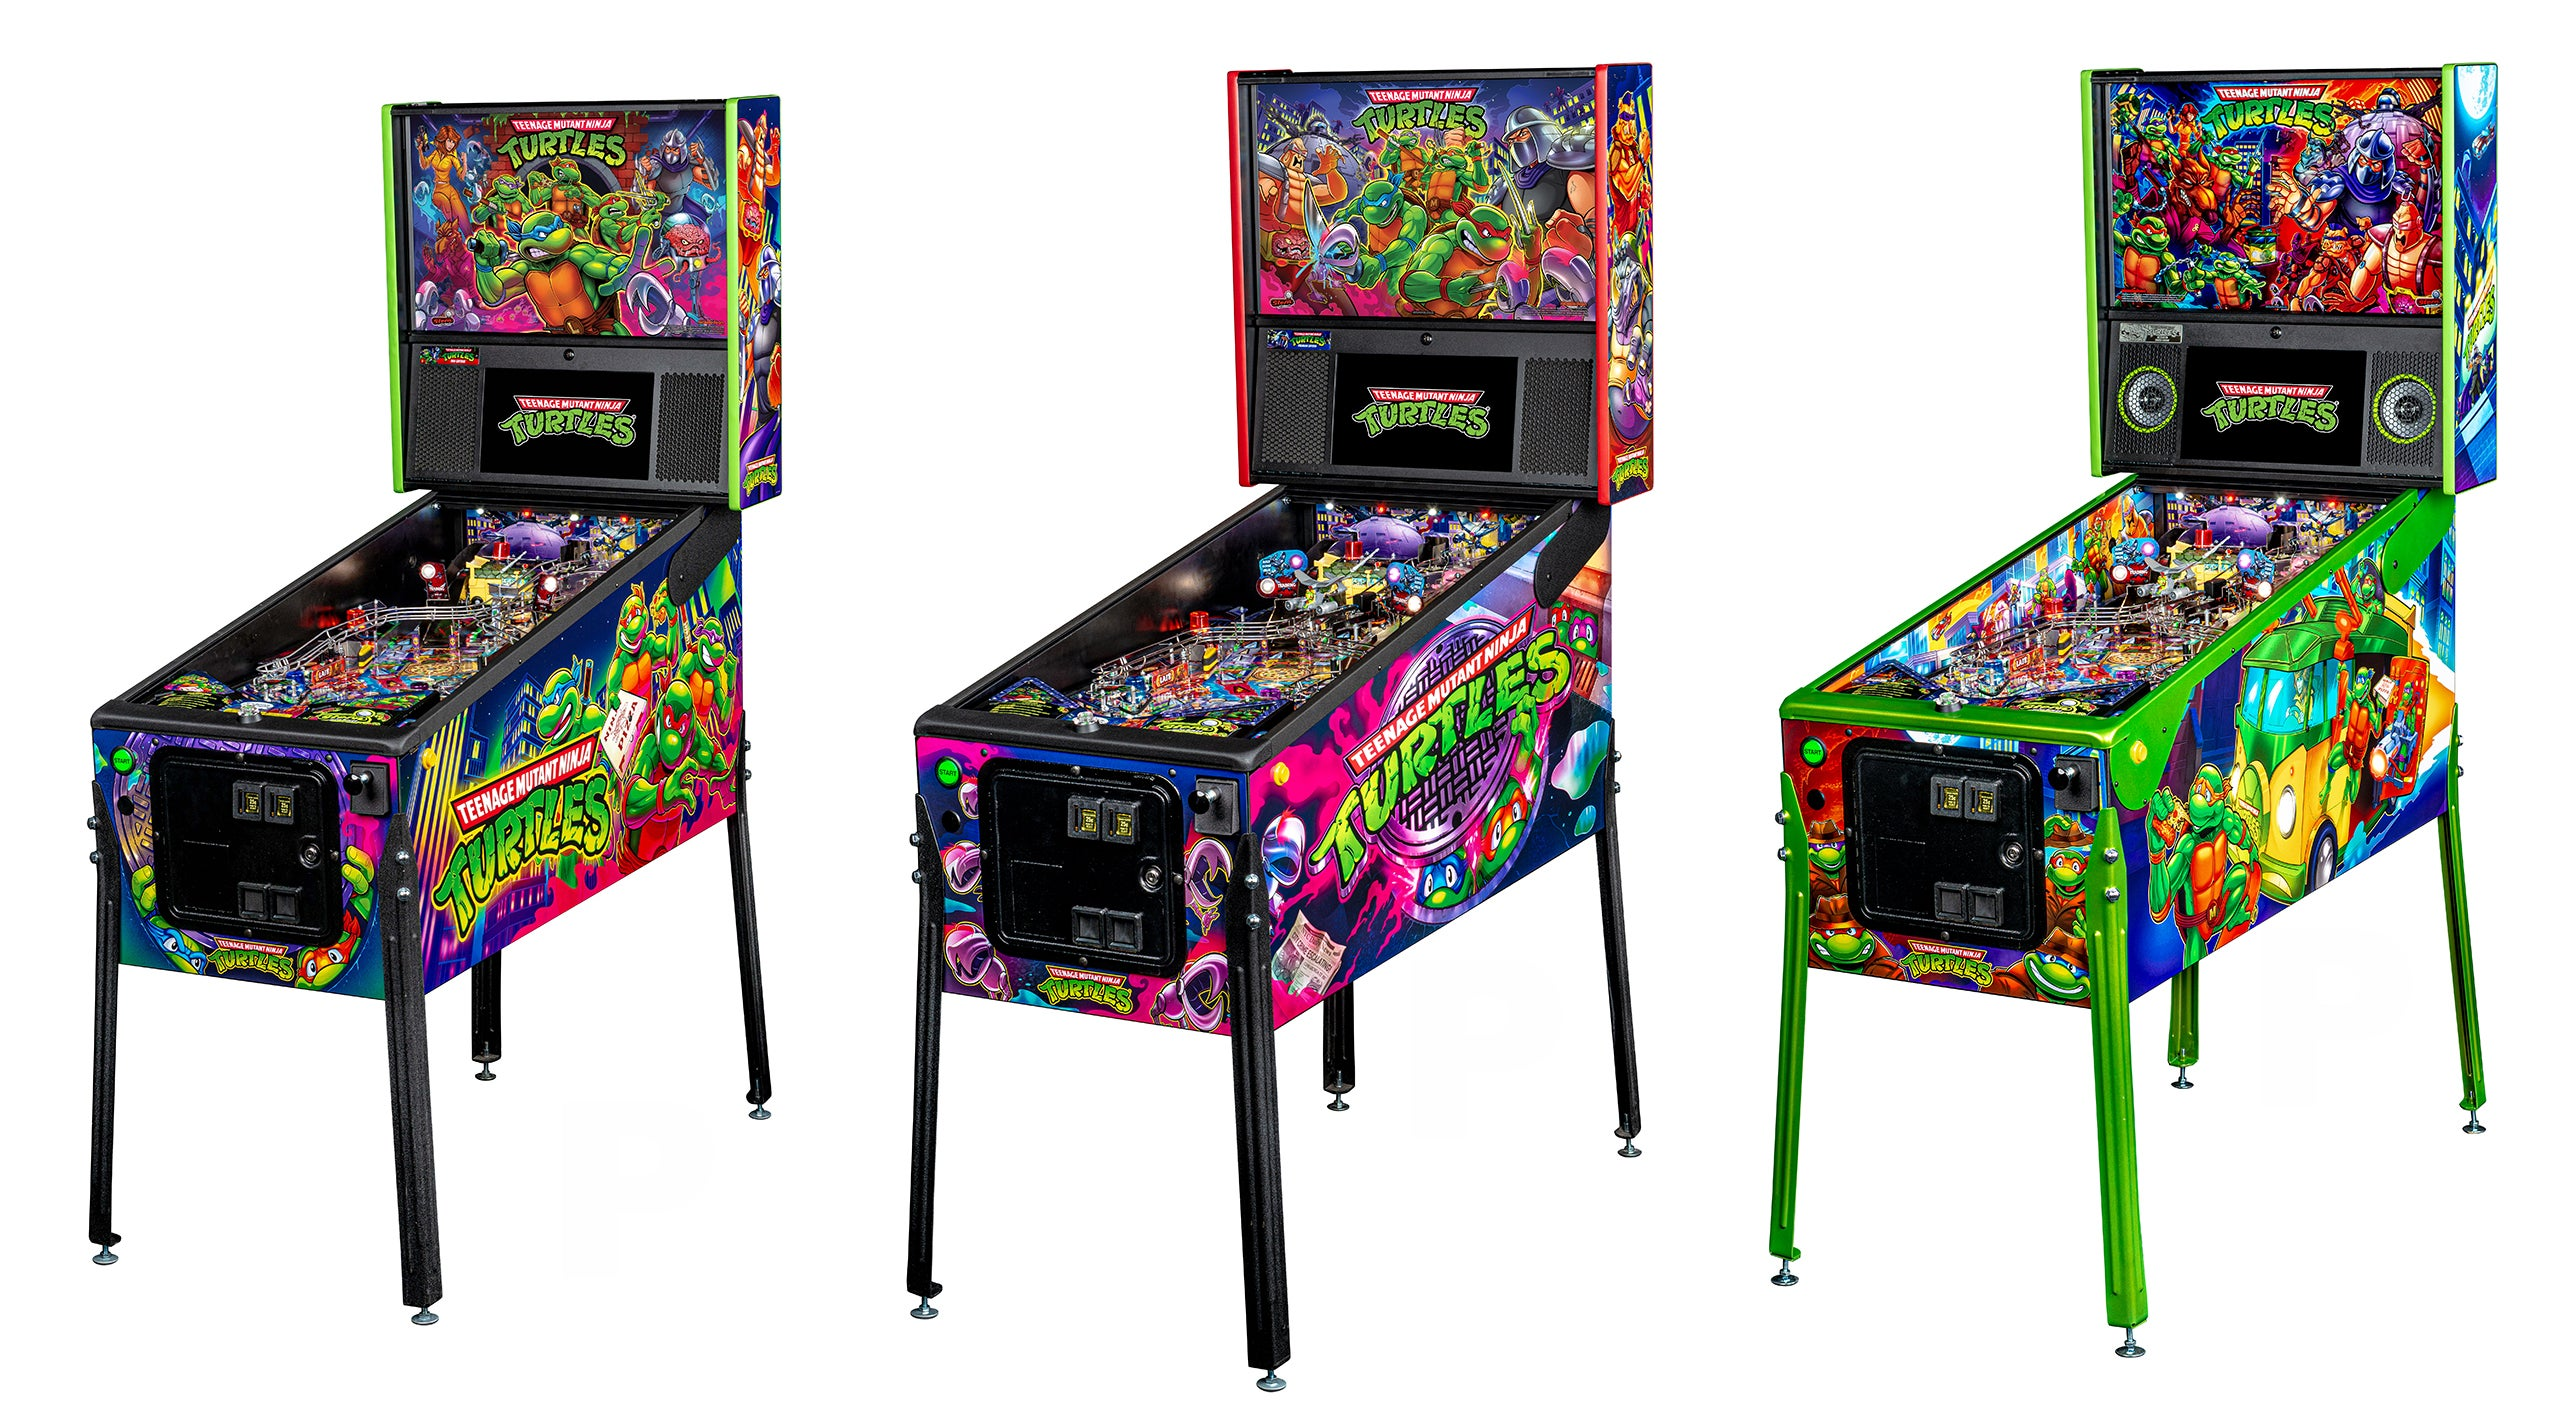 Stern's New Teenage Mutant Ninja Turtles Pinball Machines Are Glorious